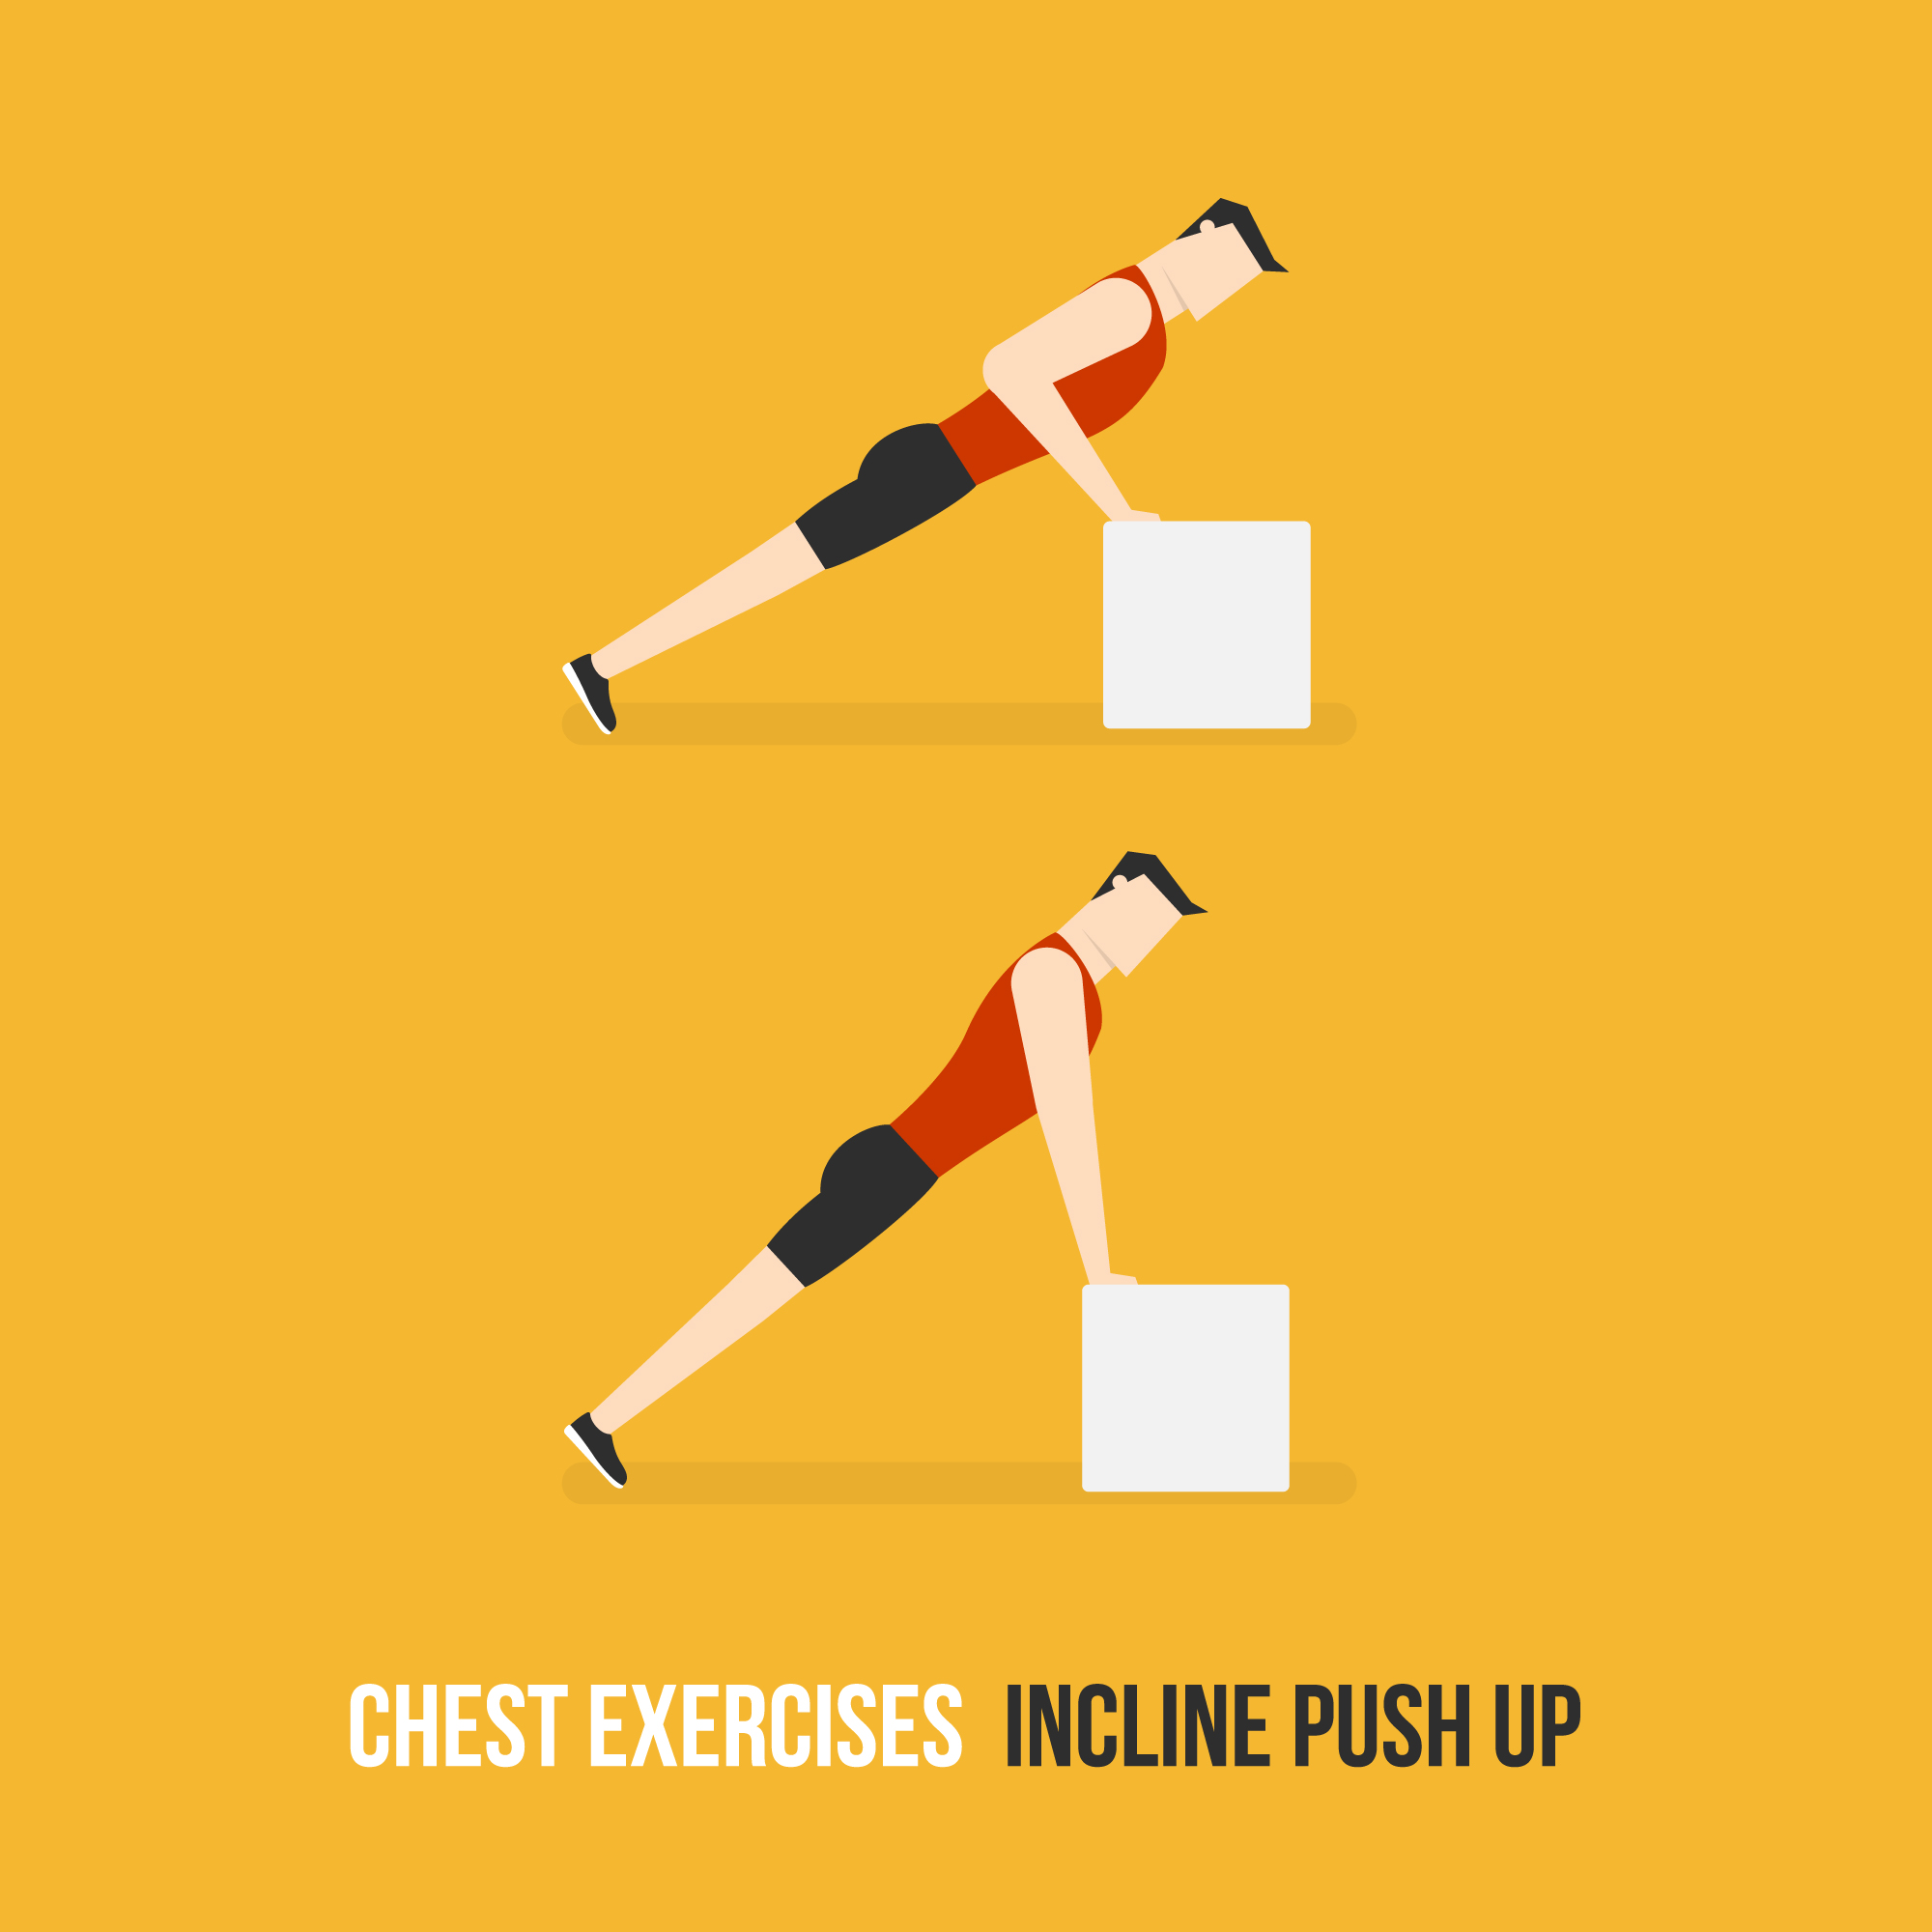 Incliner push up demostration